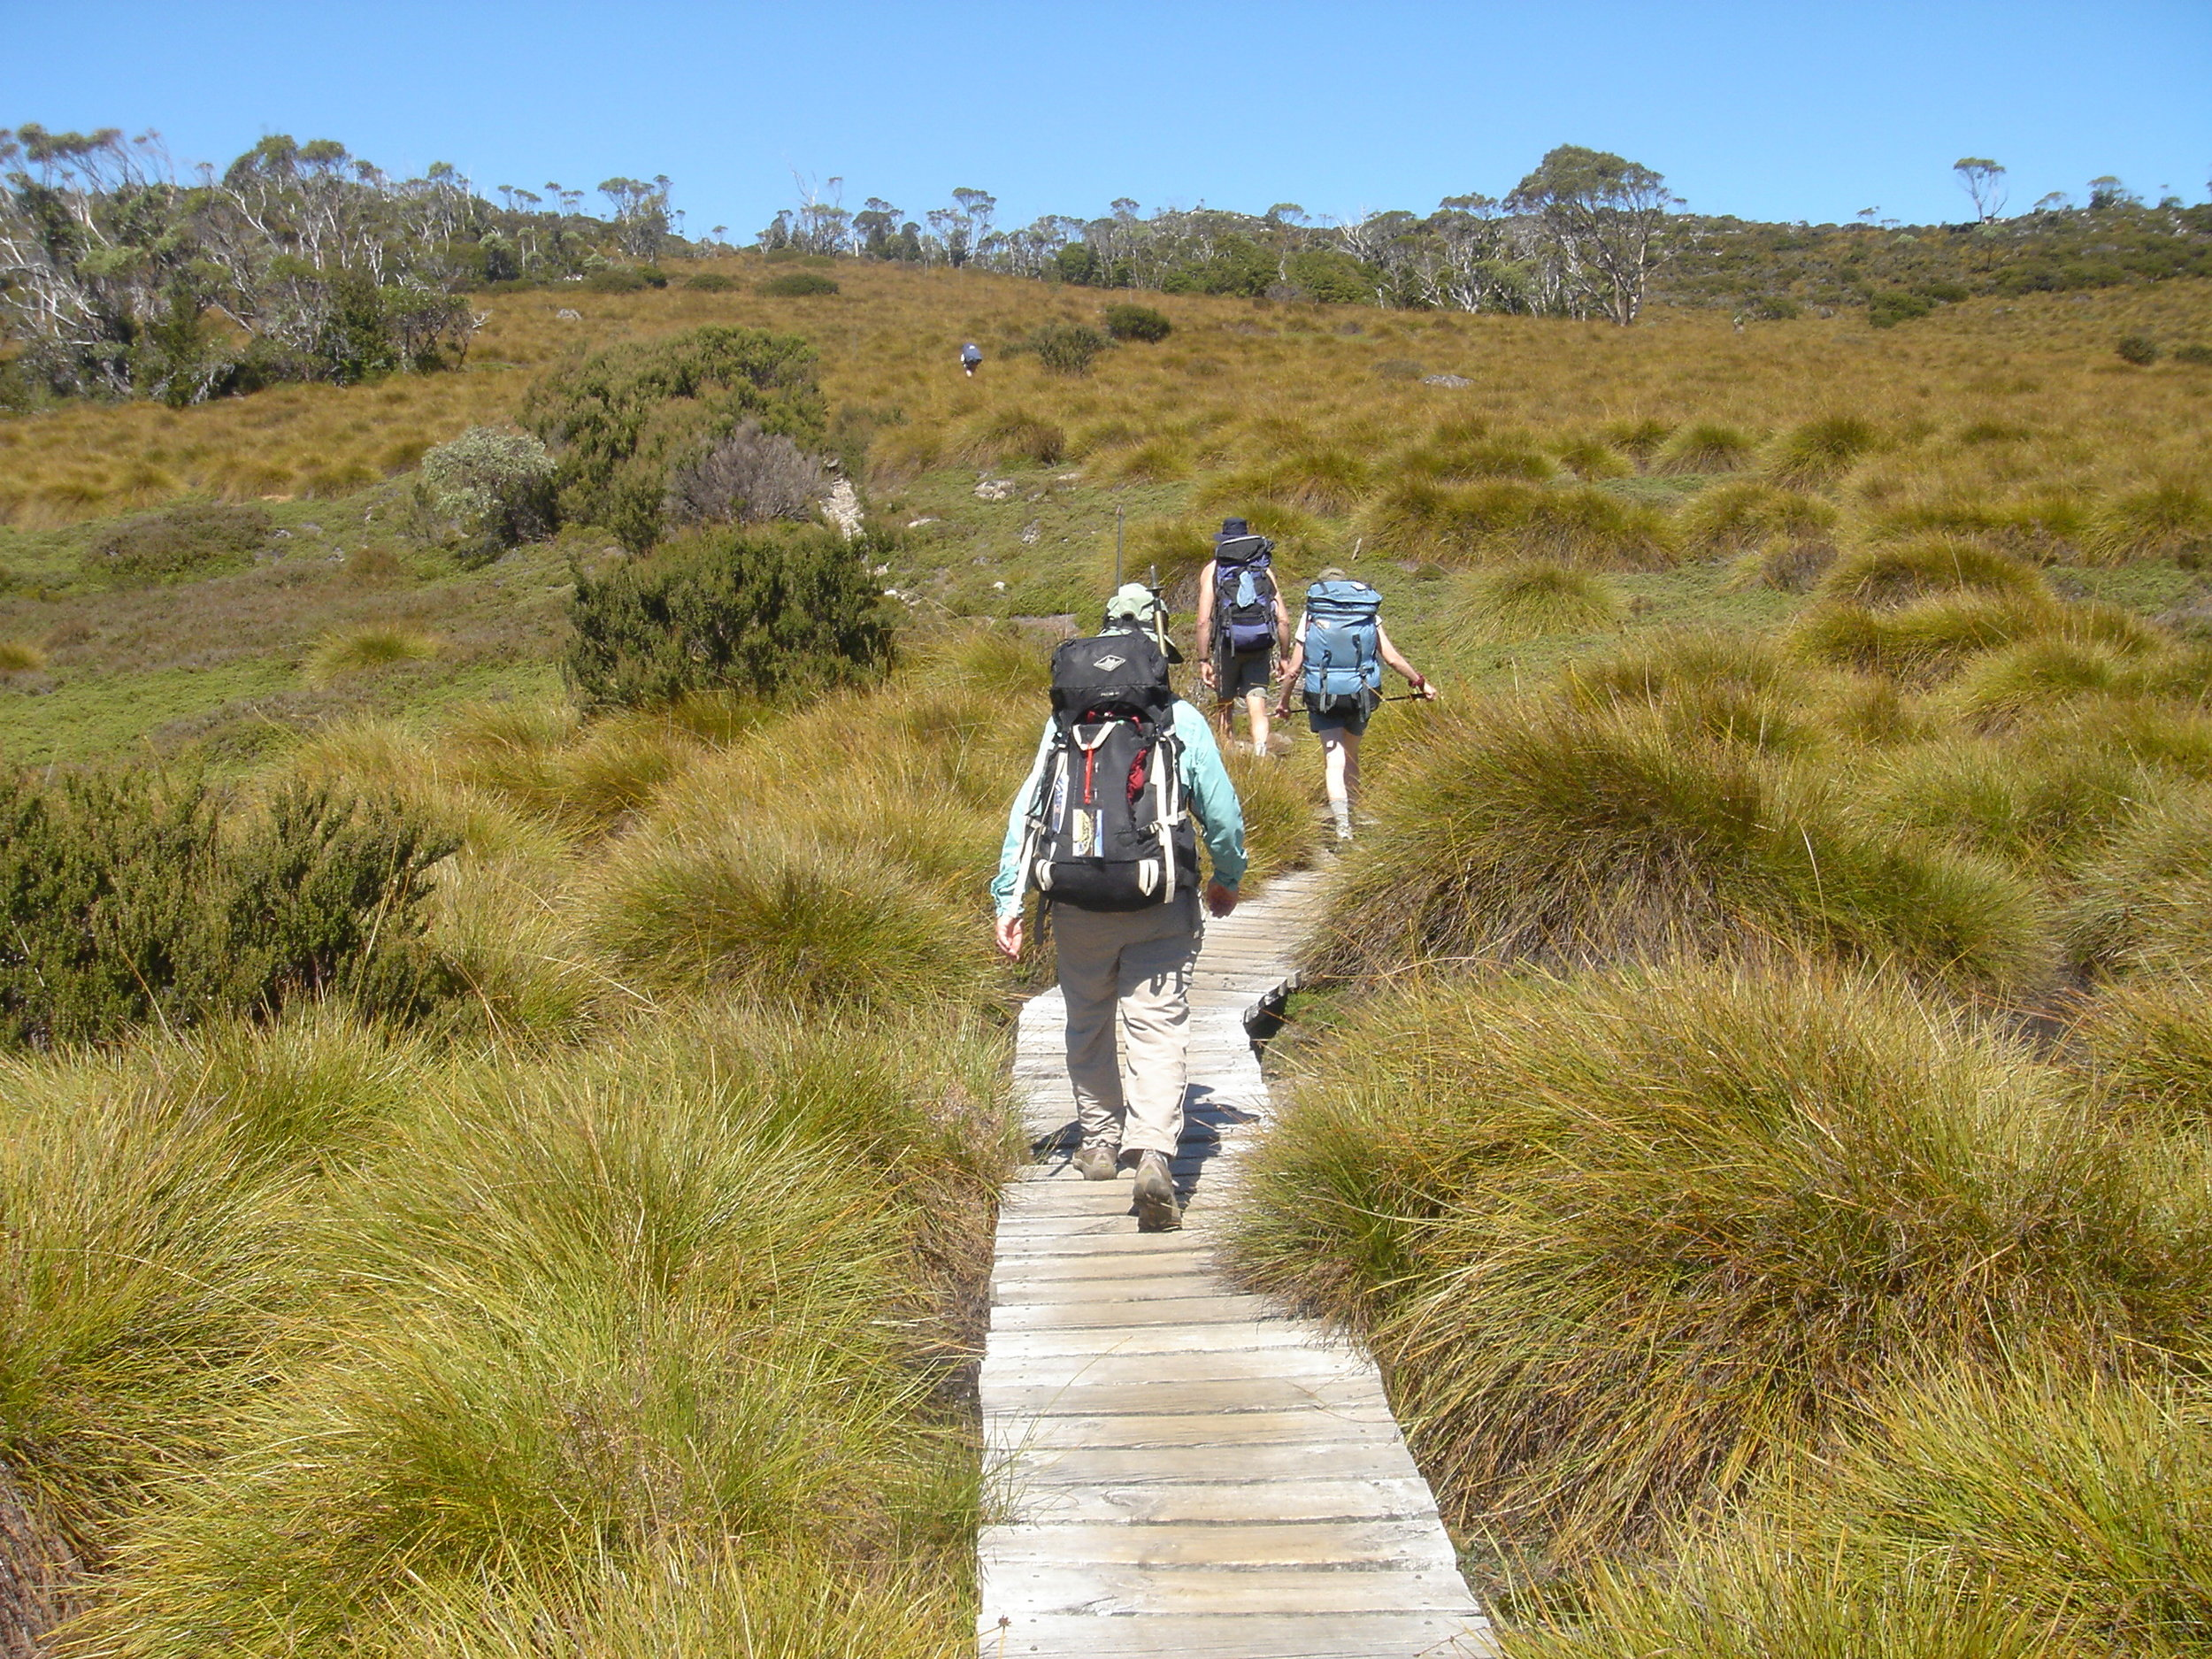 Portions of the Overland Track pass through extensive meadows of distinctive button grass.